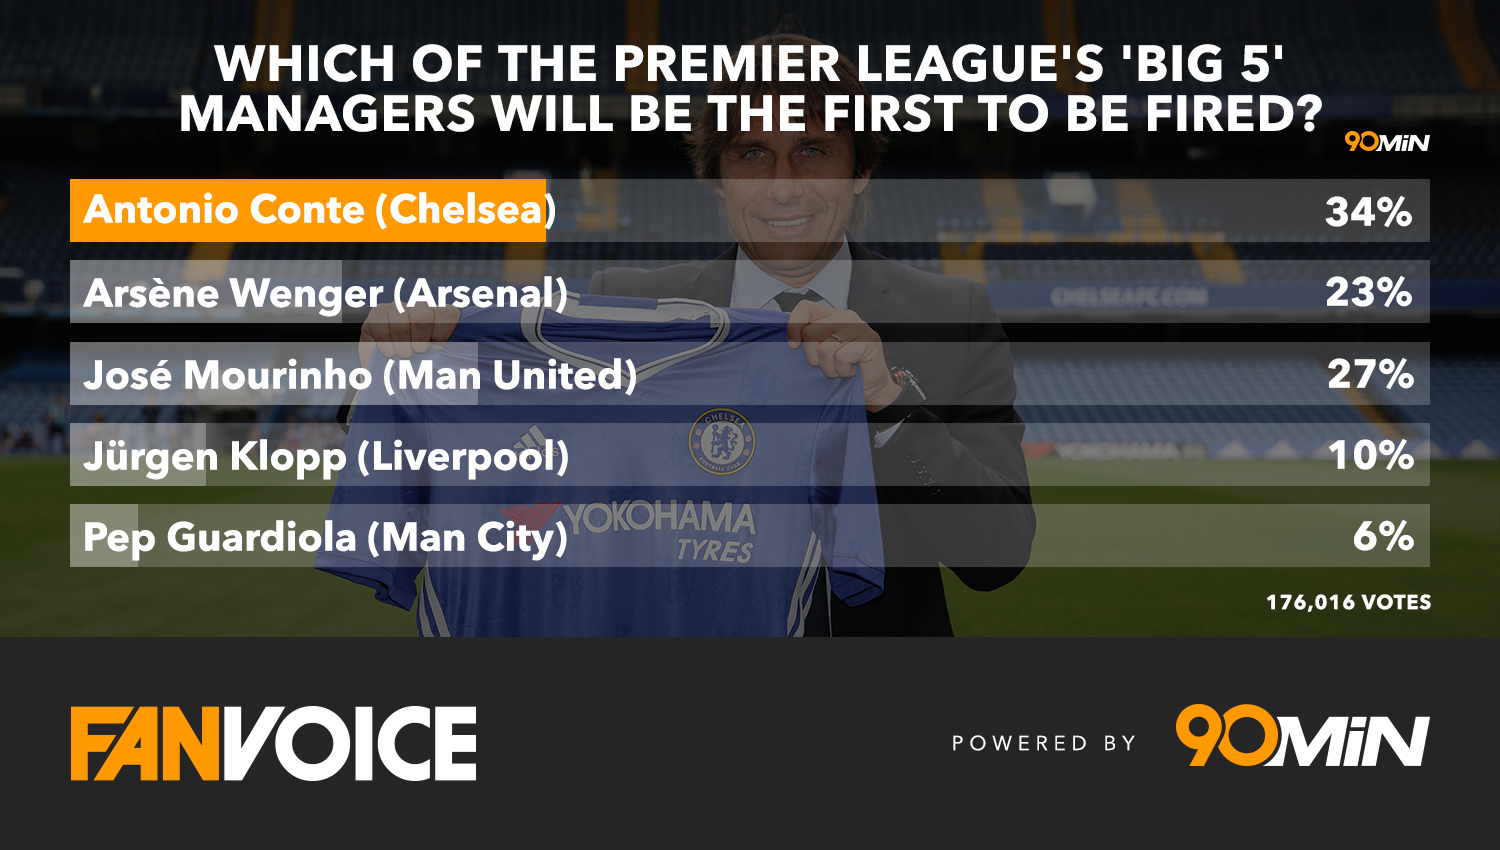 Antonio Conte: Leads poll to be first sacked